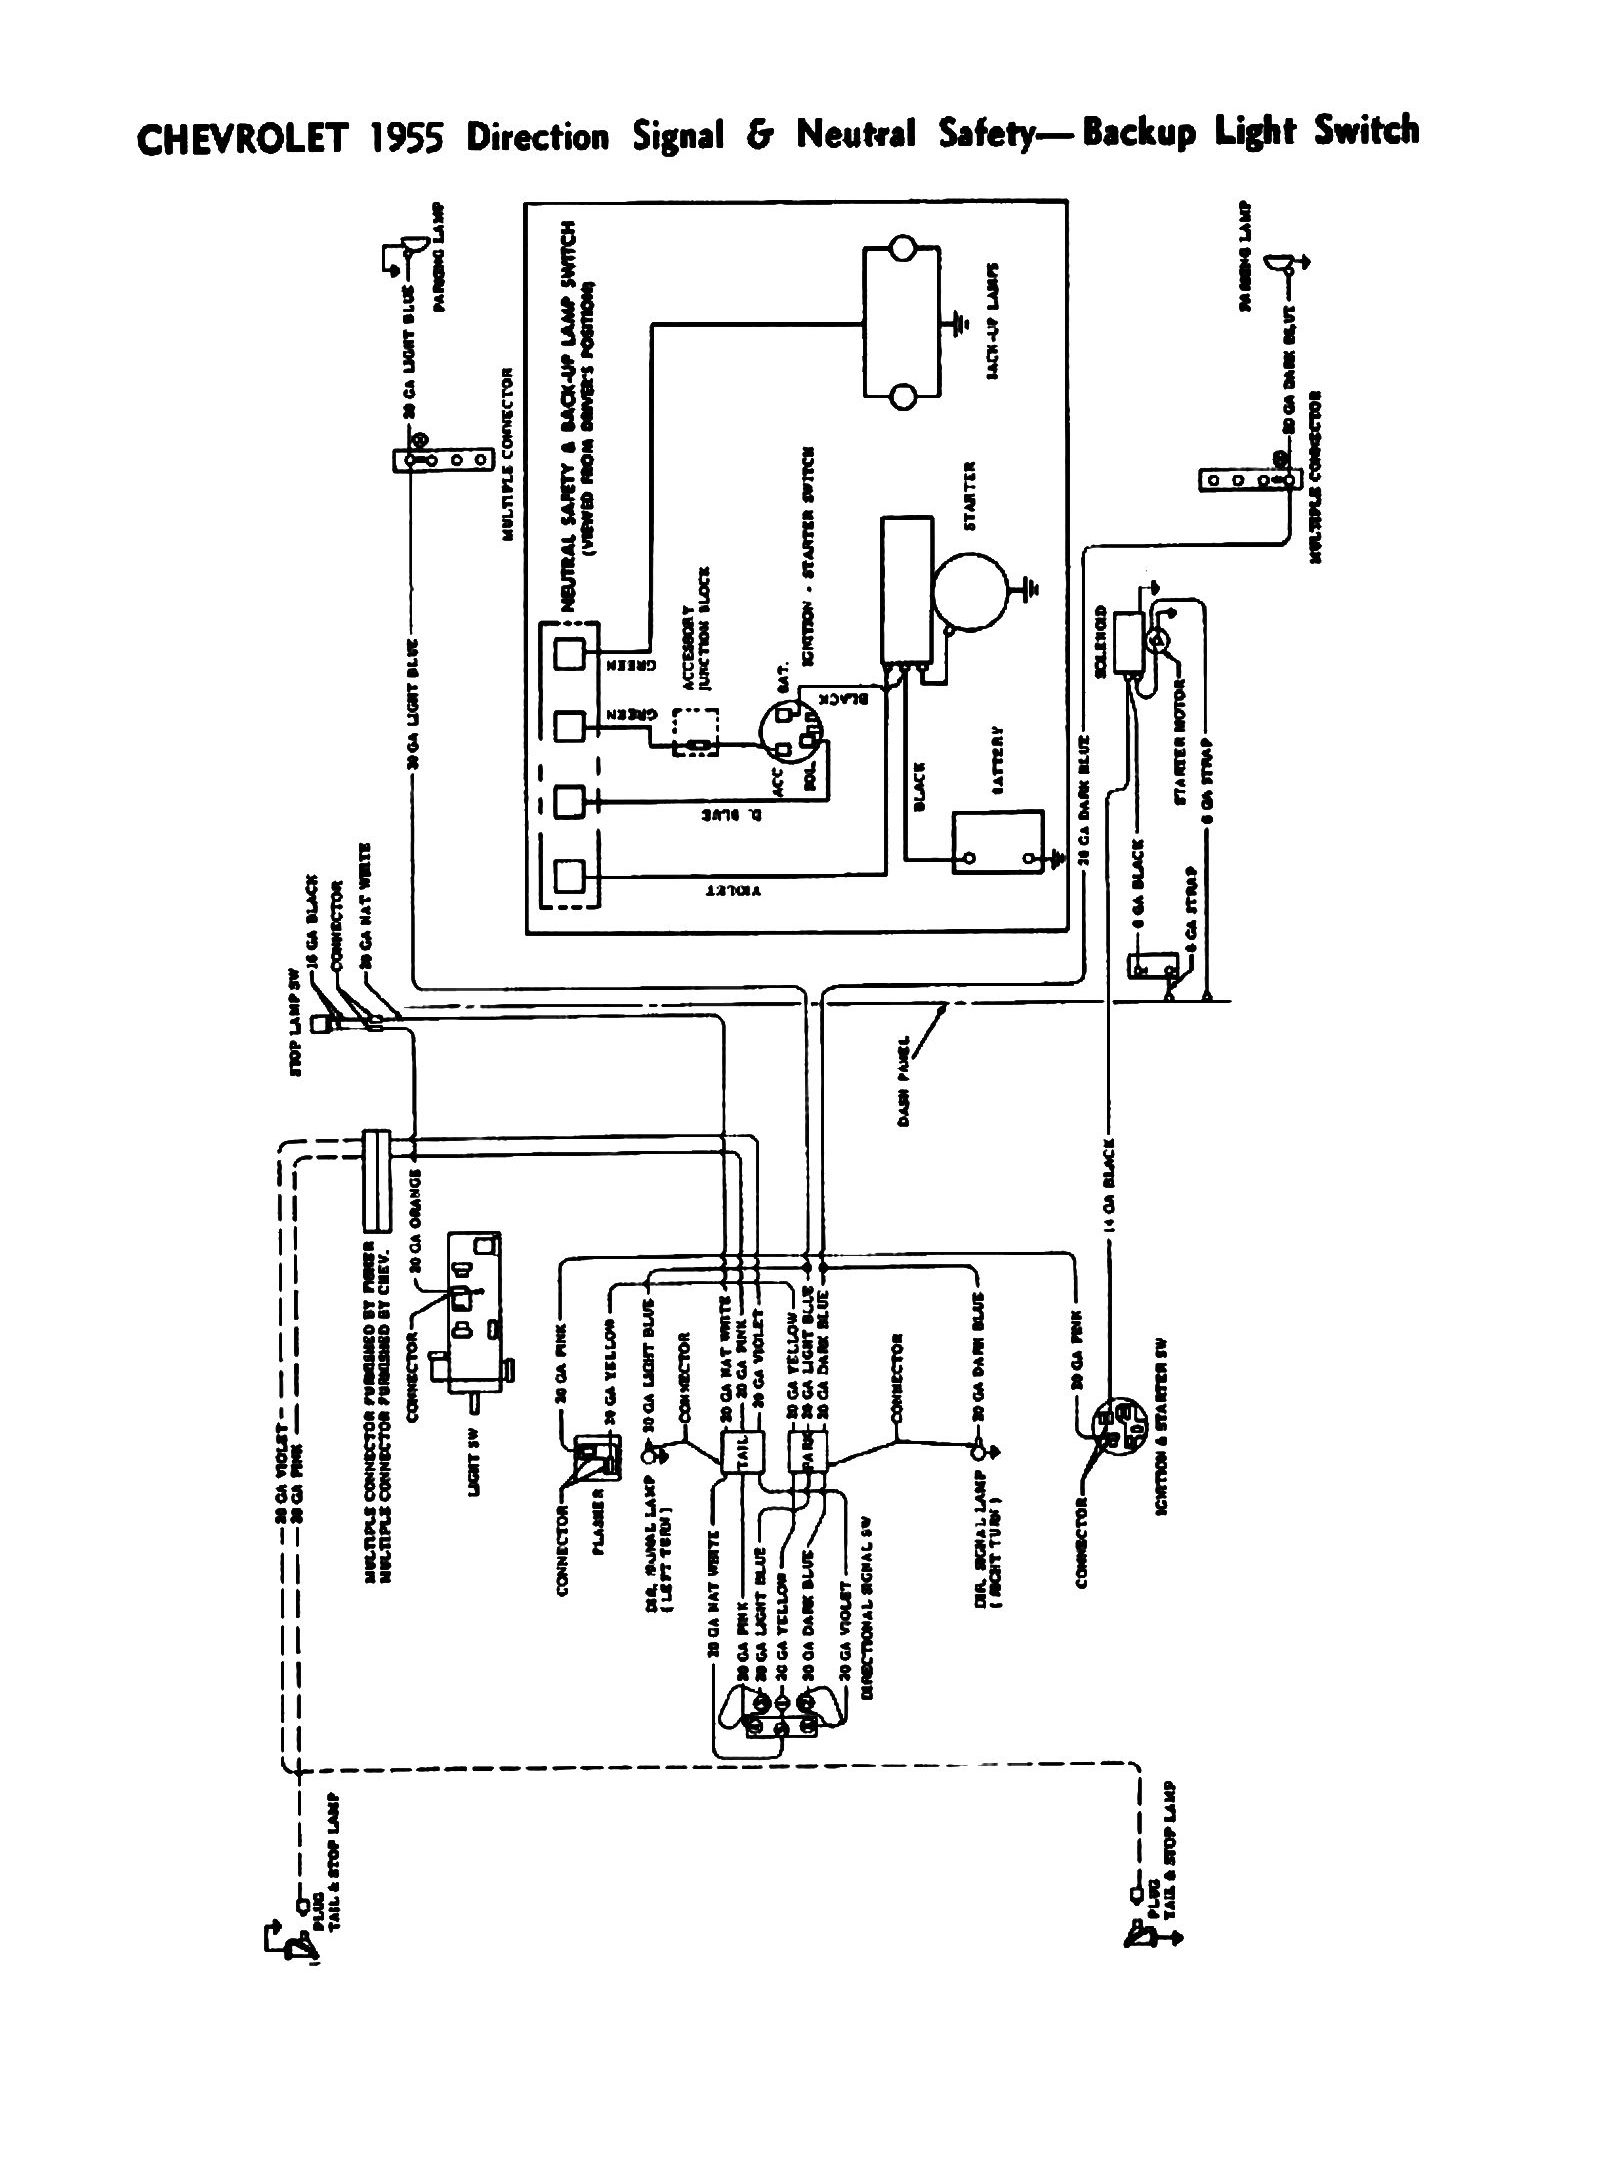 Wiring Diagram Besides 1950 Chevy Truck Wiring Diagram On Diagram